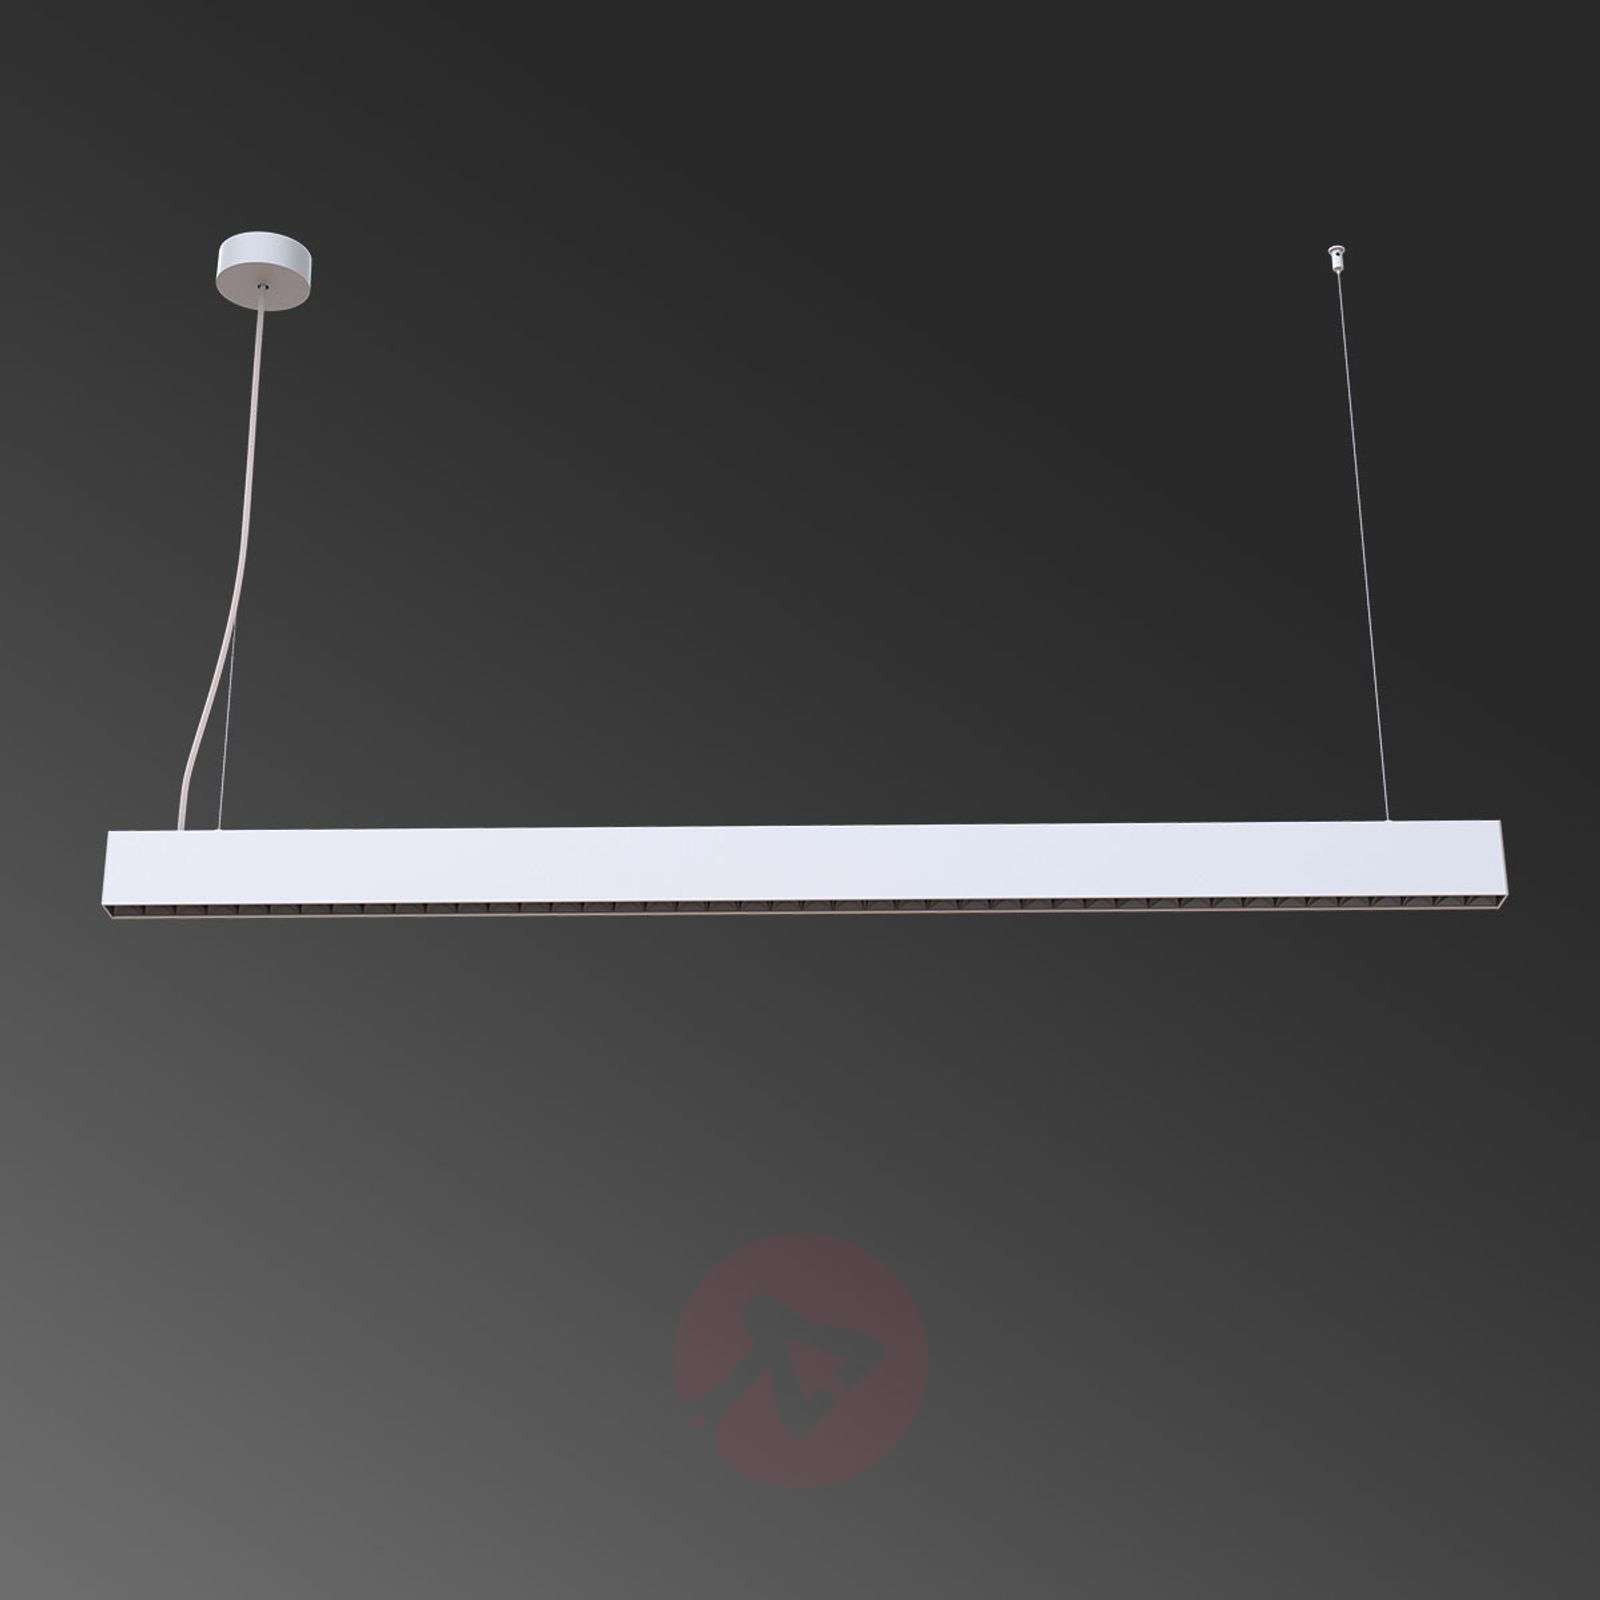 Dimbare office LED hanglamp Ernestine-9968018-06